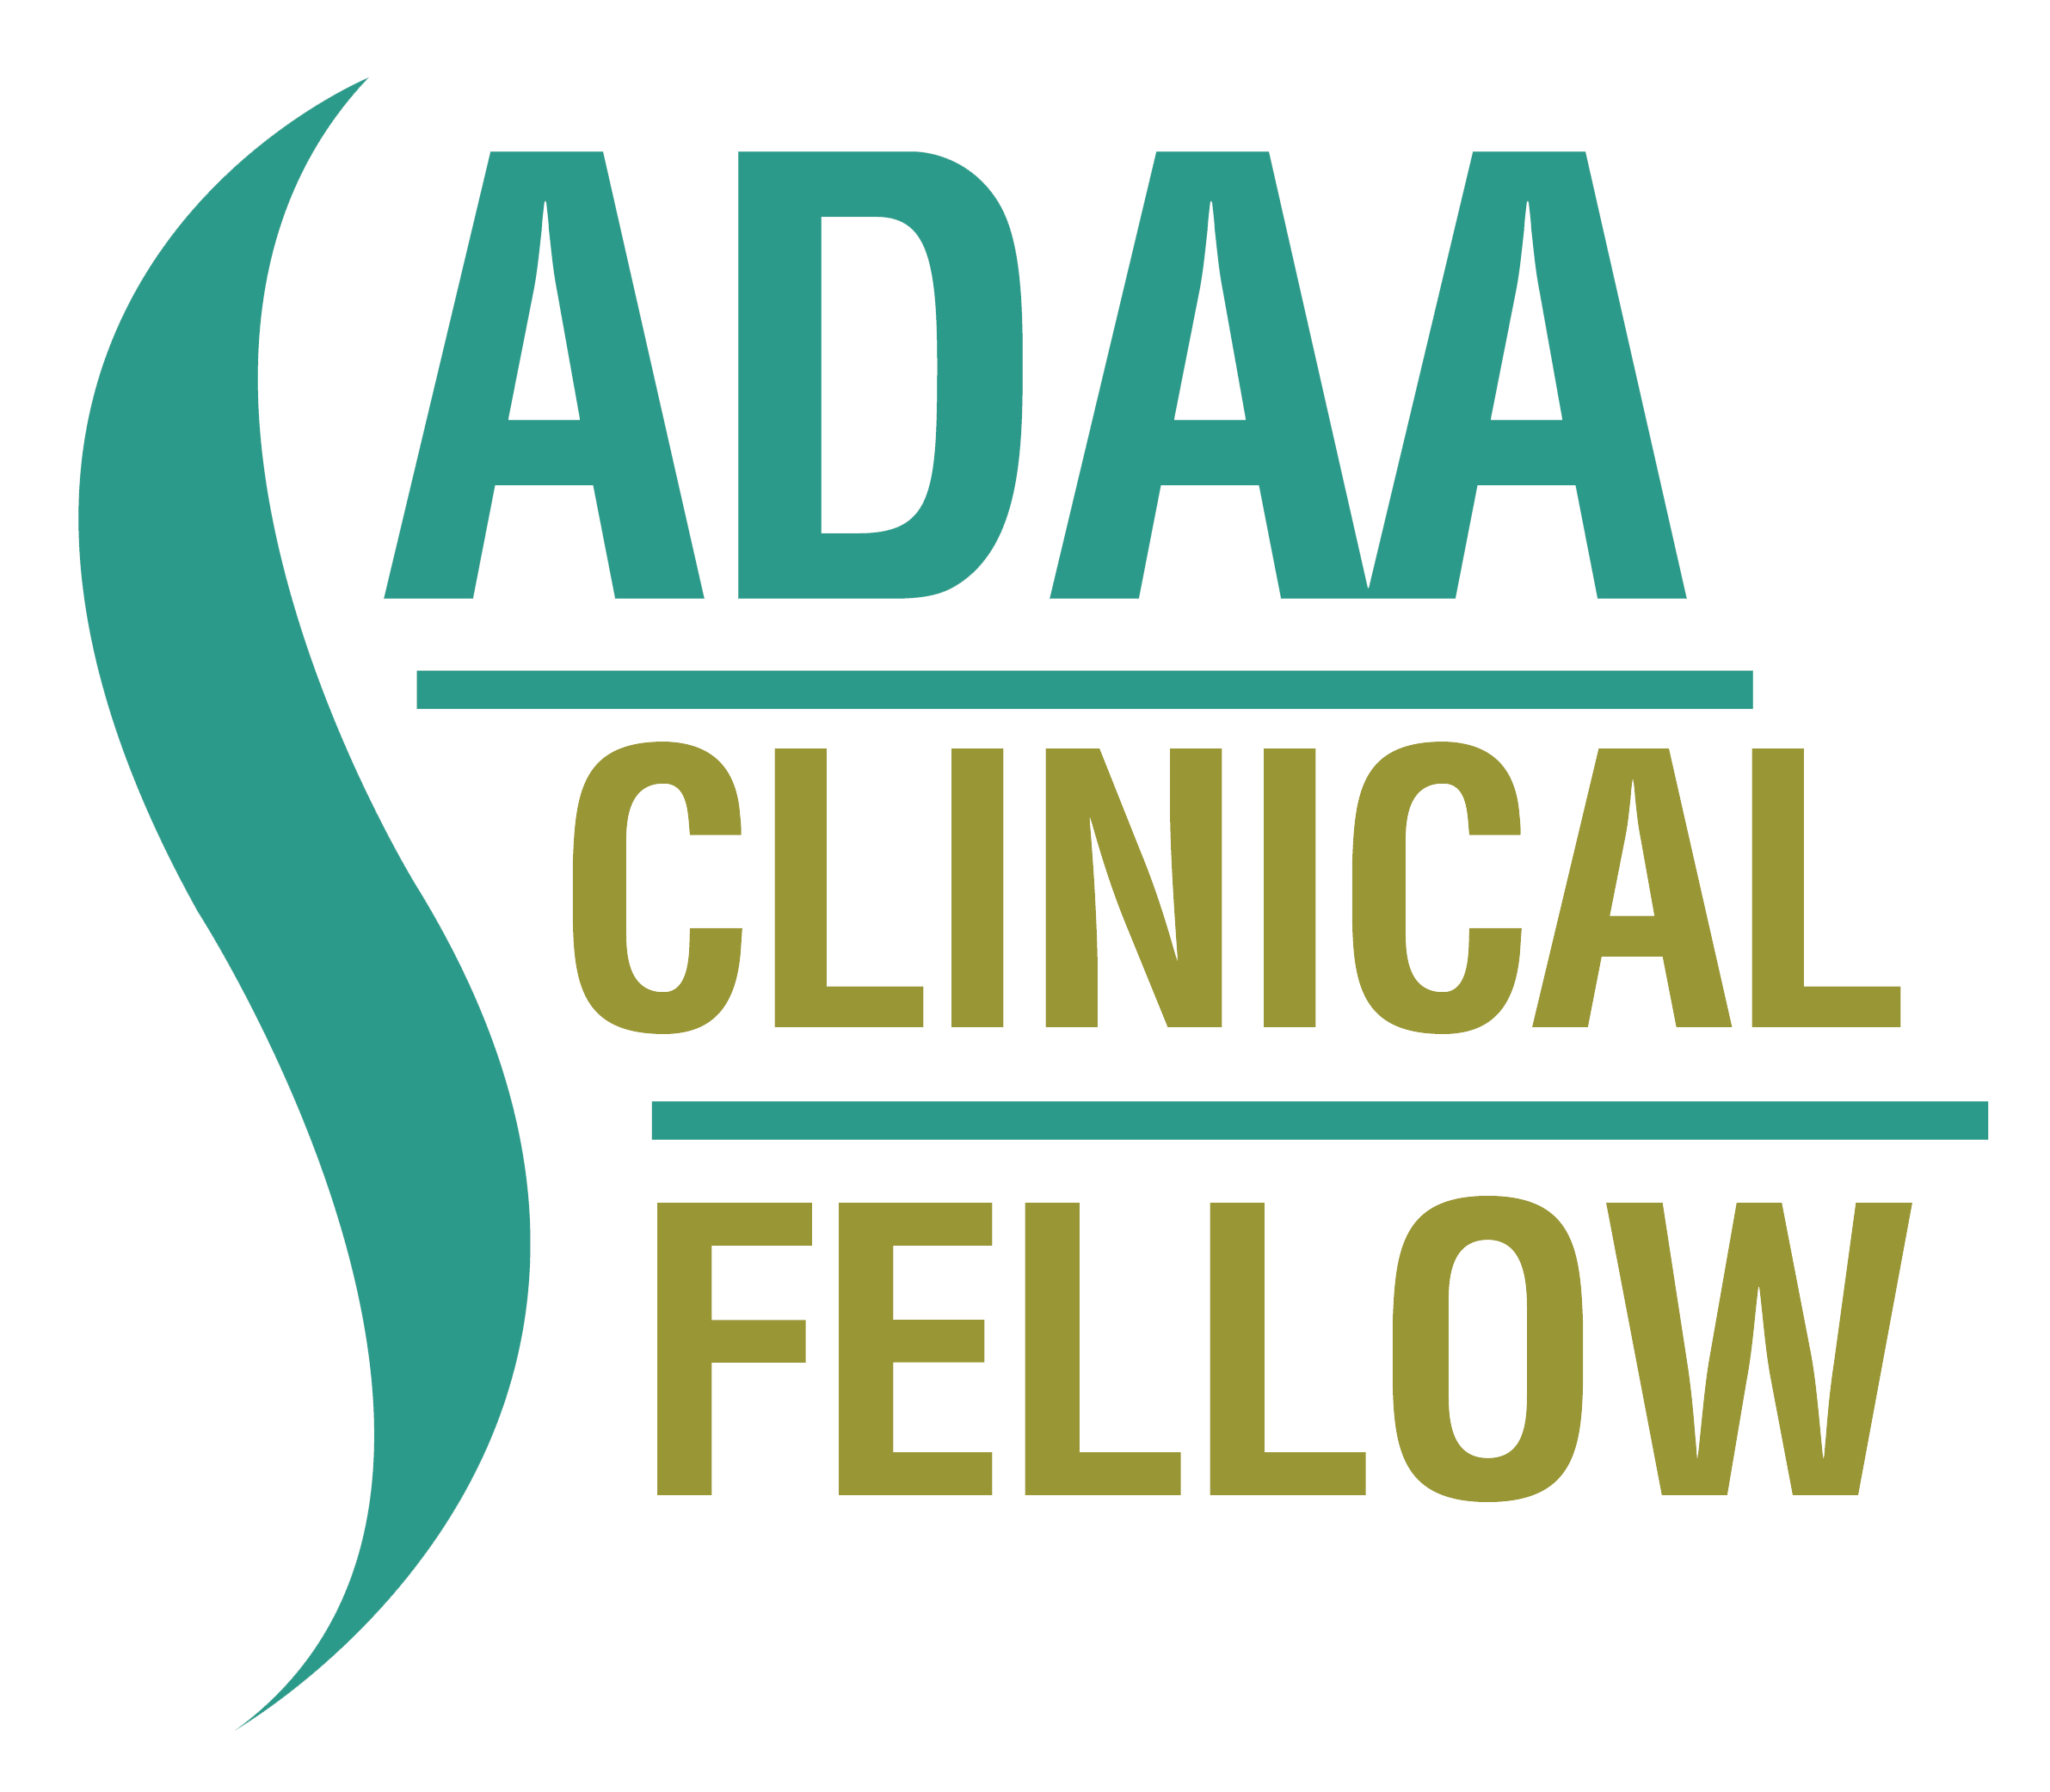 adaa-clinical-fellow